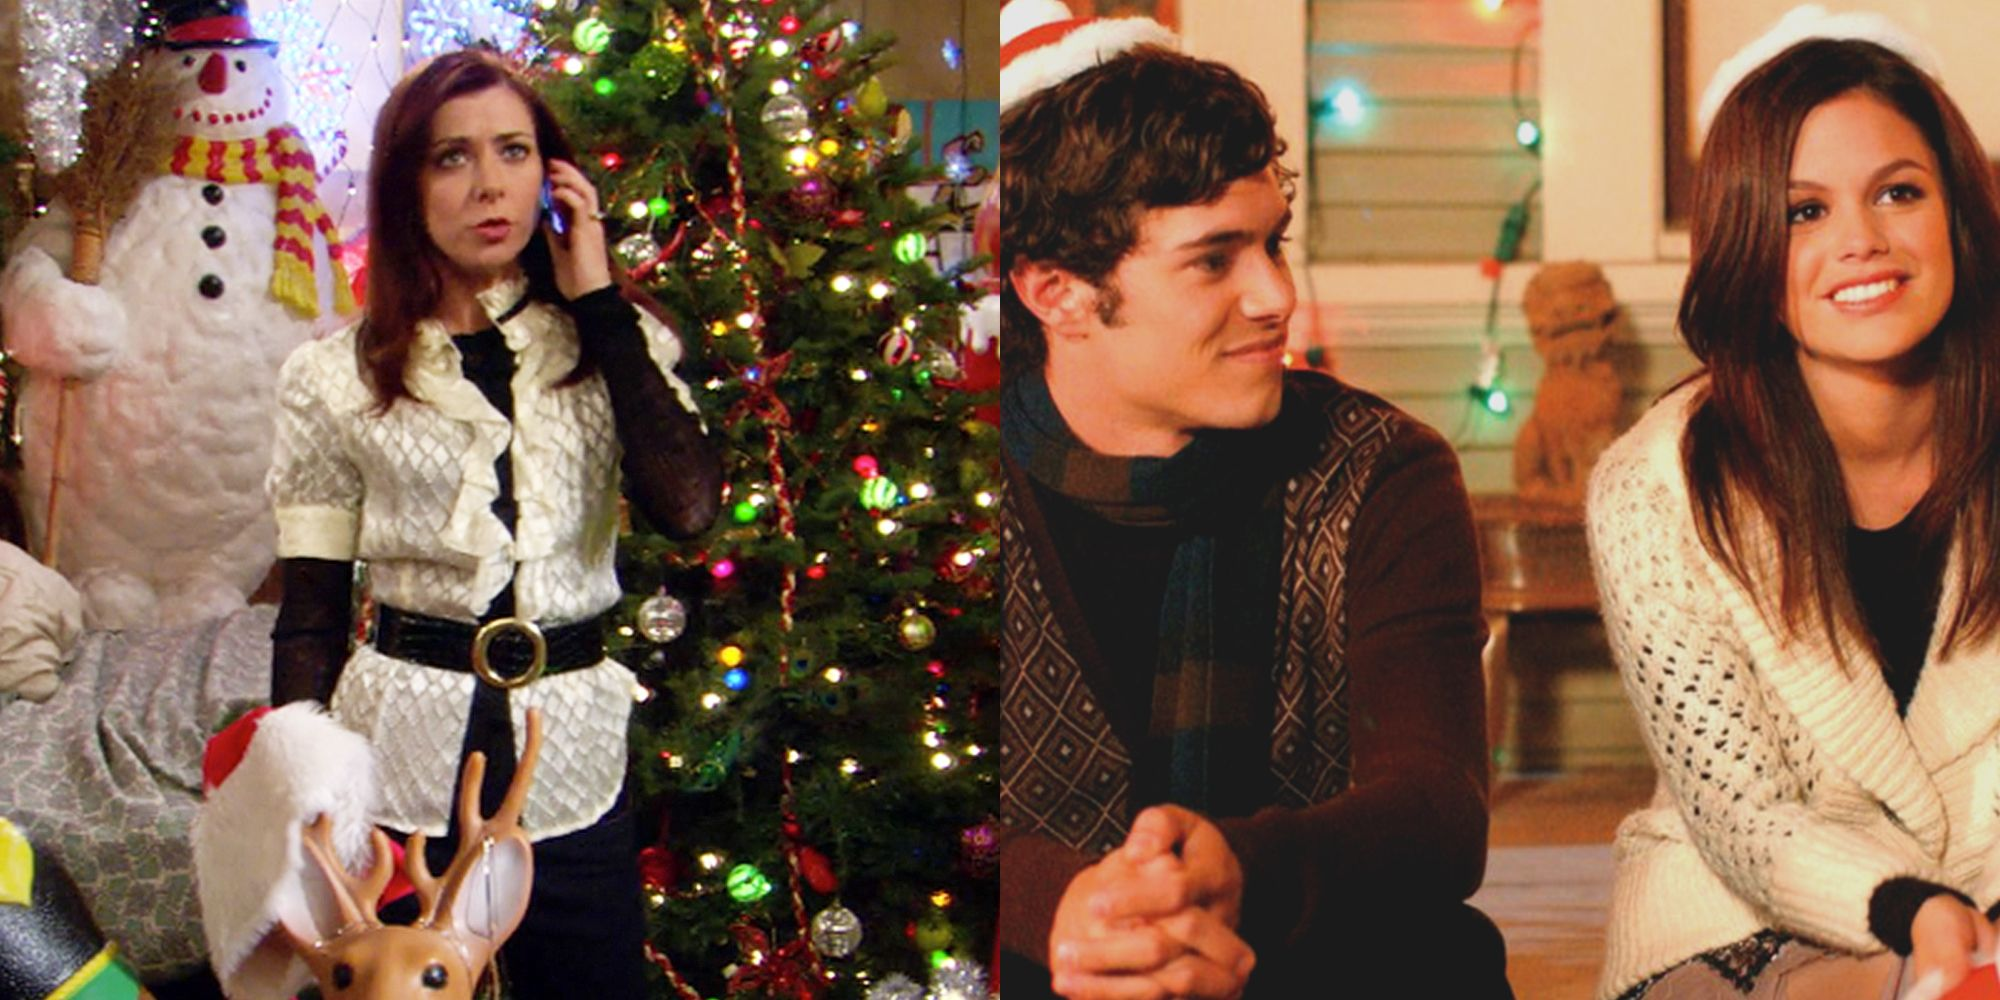 The Best Christmas TV Episodes to Watch Over the Holidays